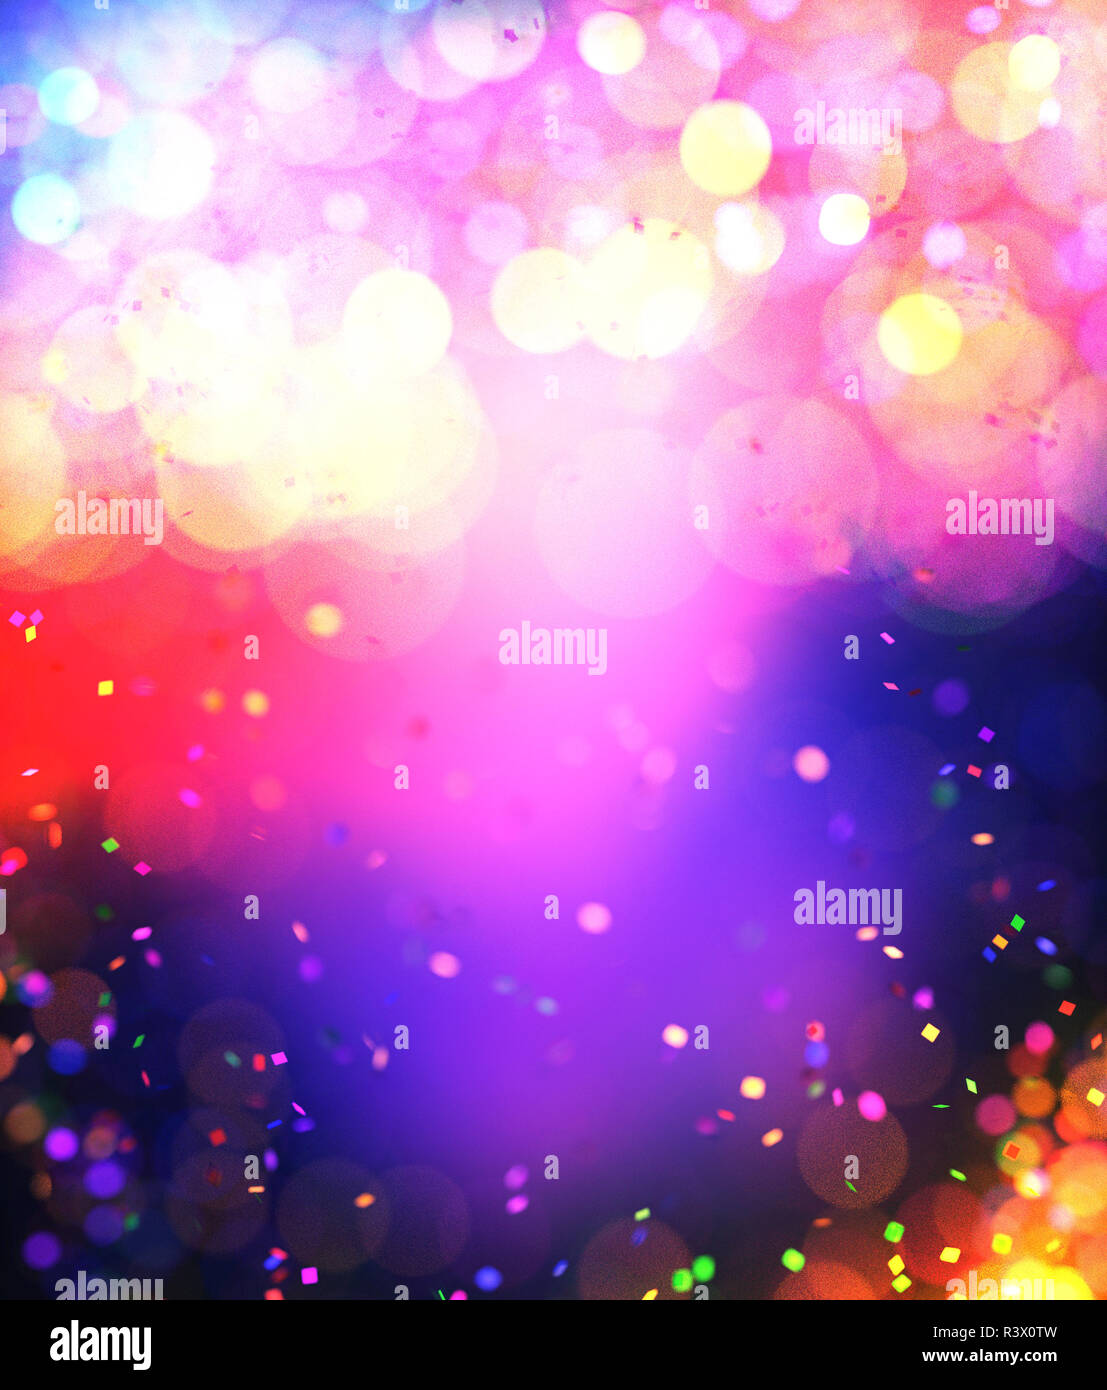 Colorful Christmas Background Design.Abstract Colorful Blurred Lights For Festive Background